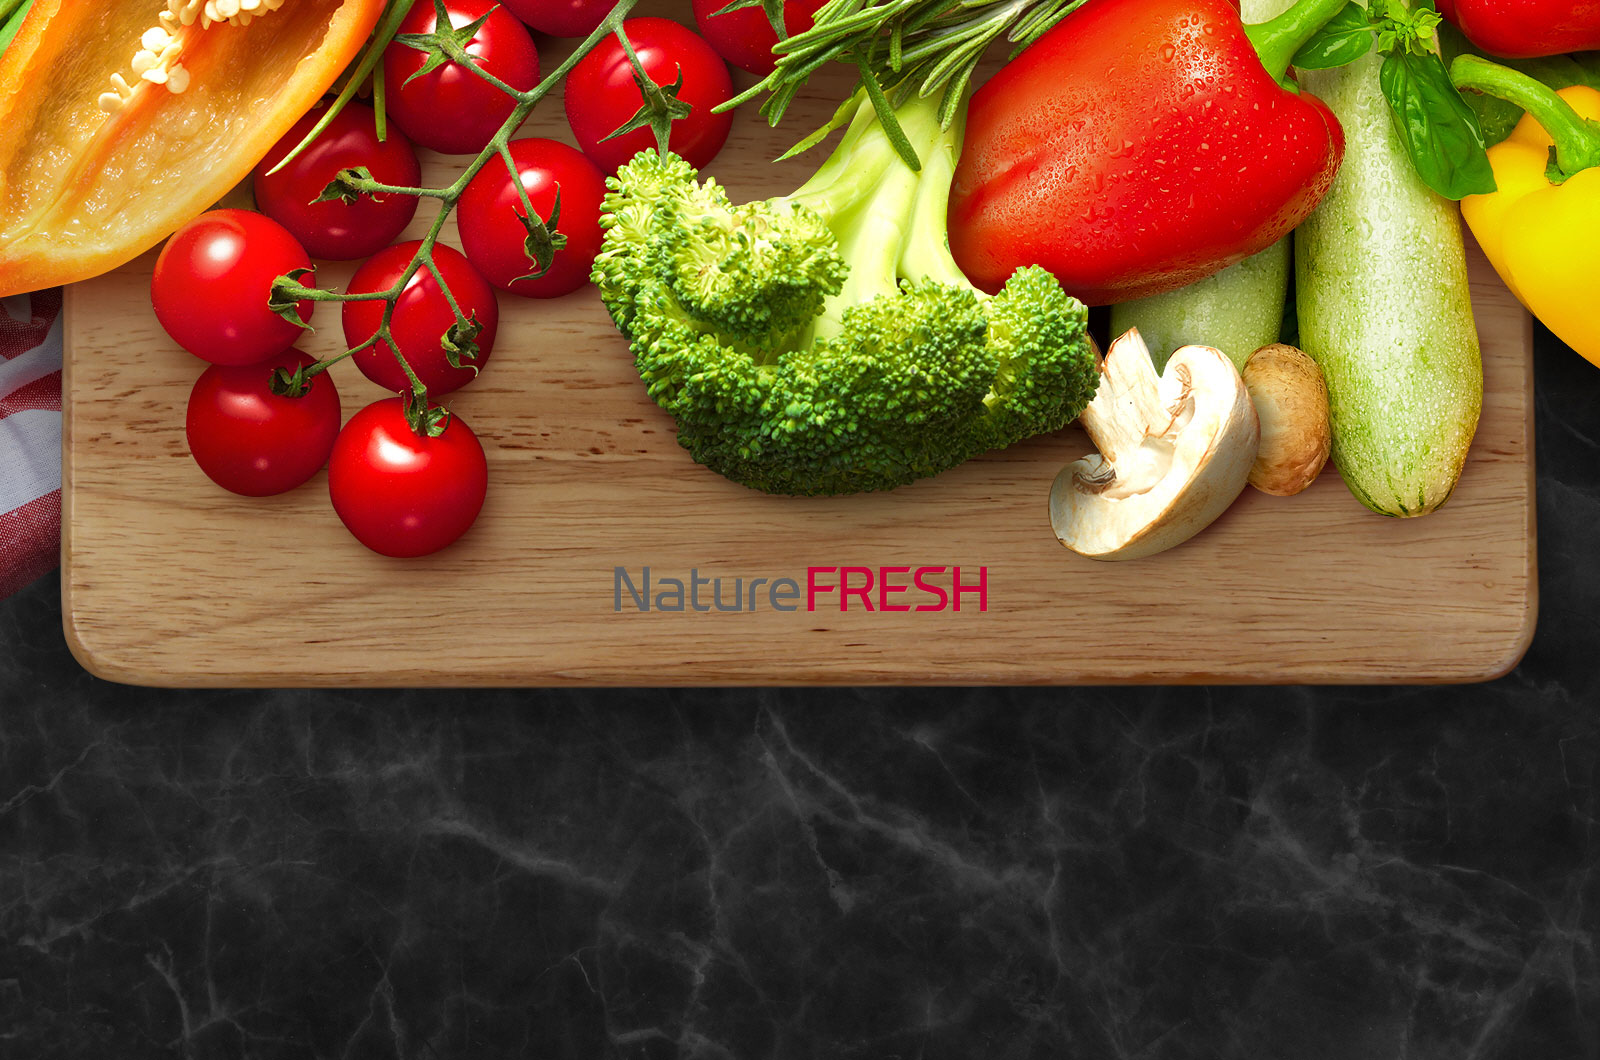 Global_Pollux_2016_Feature_02_NatureFRESH_D1